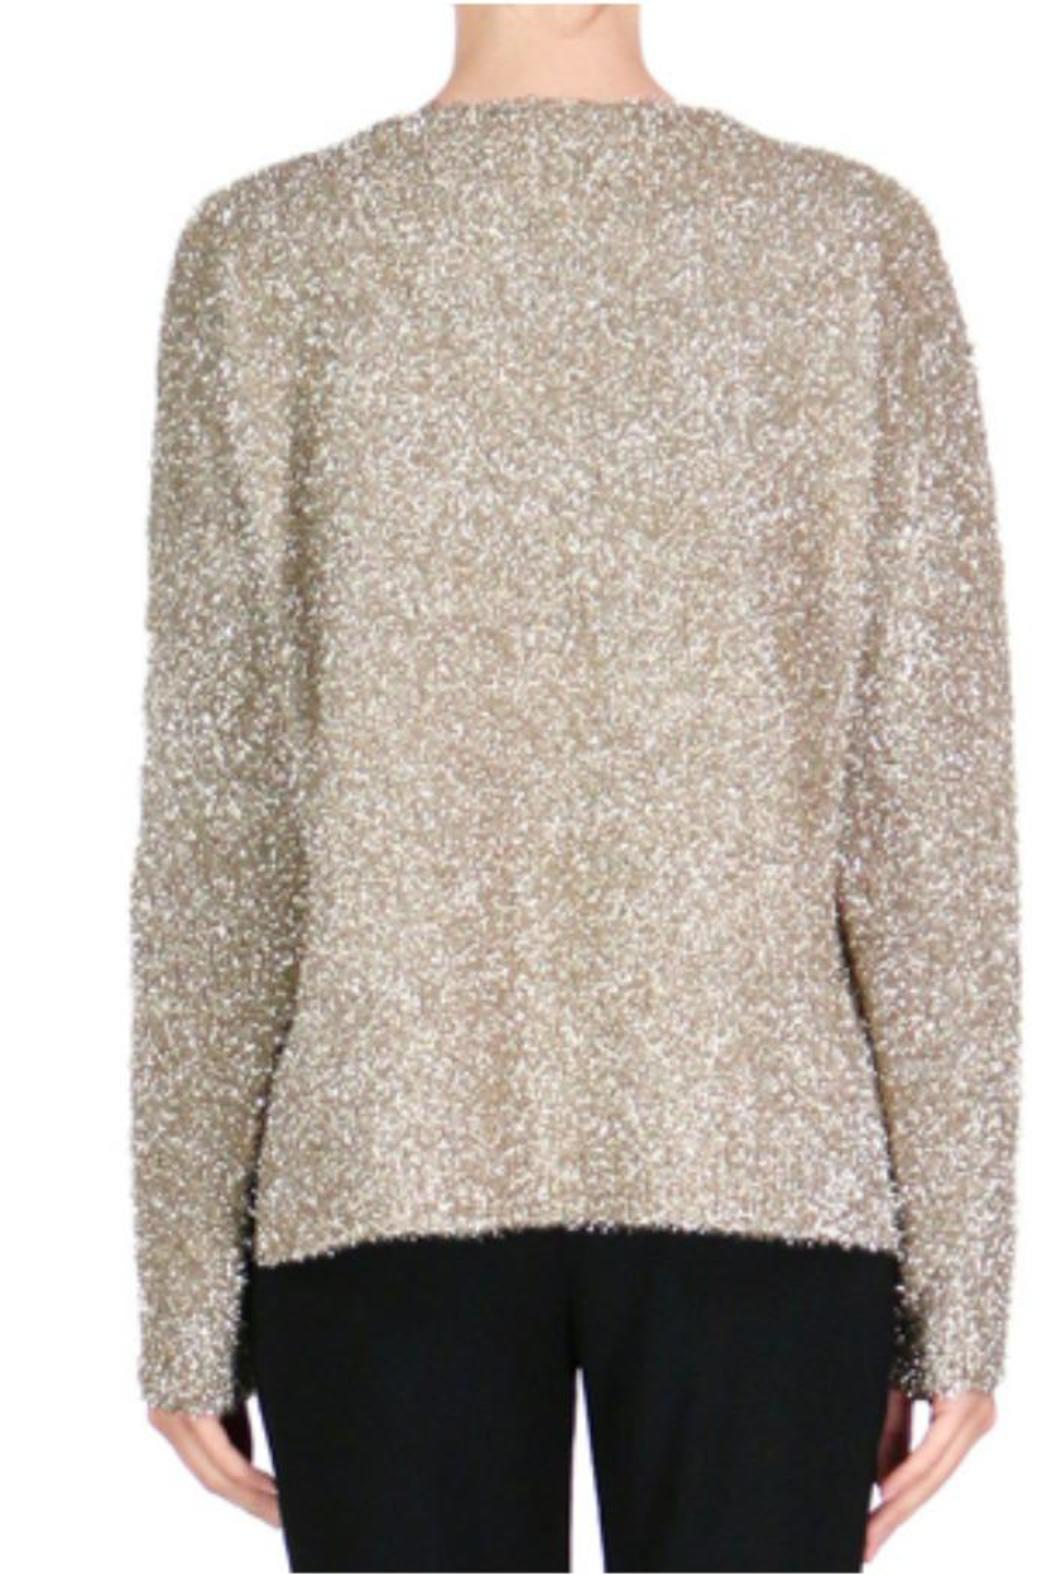 Endless Rose Gold Sparkly Sweater from Miami by Allie & Chica ...